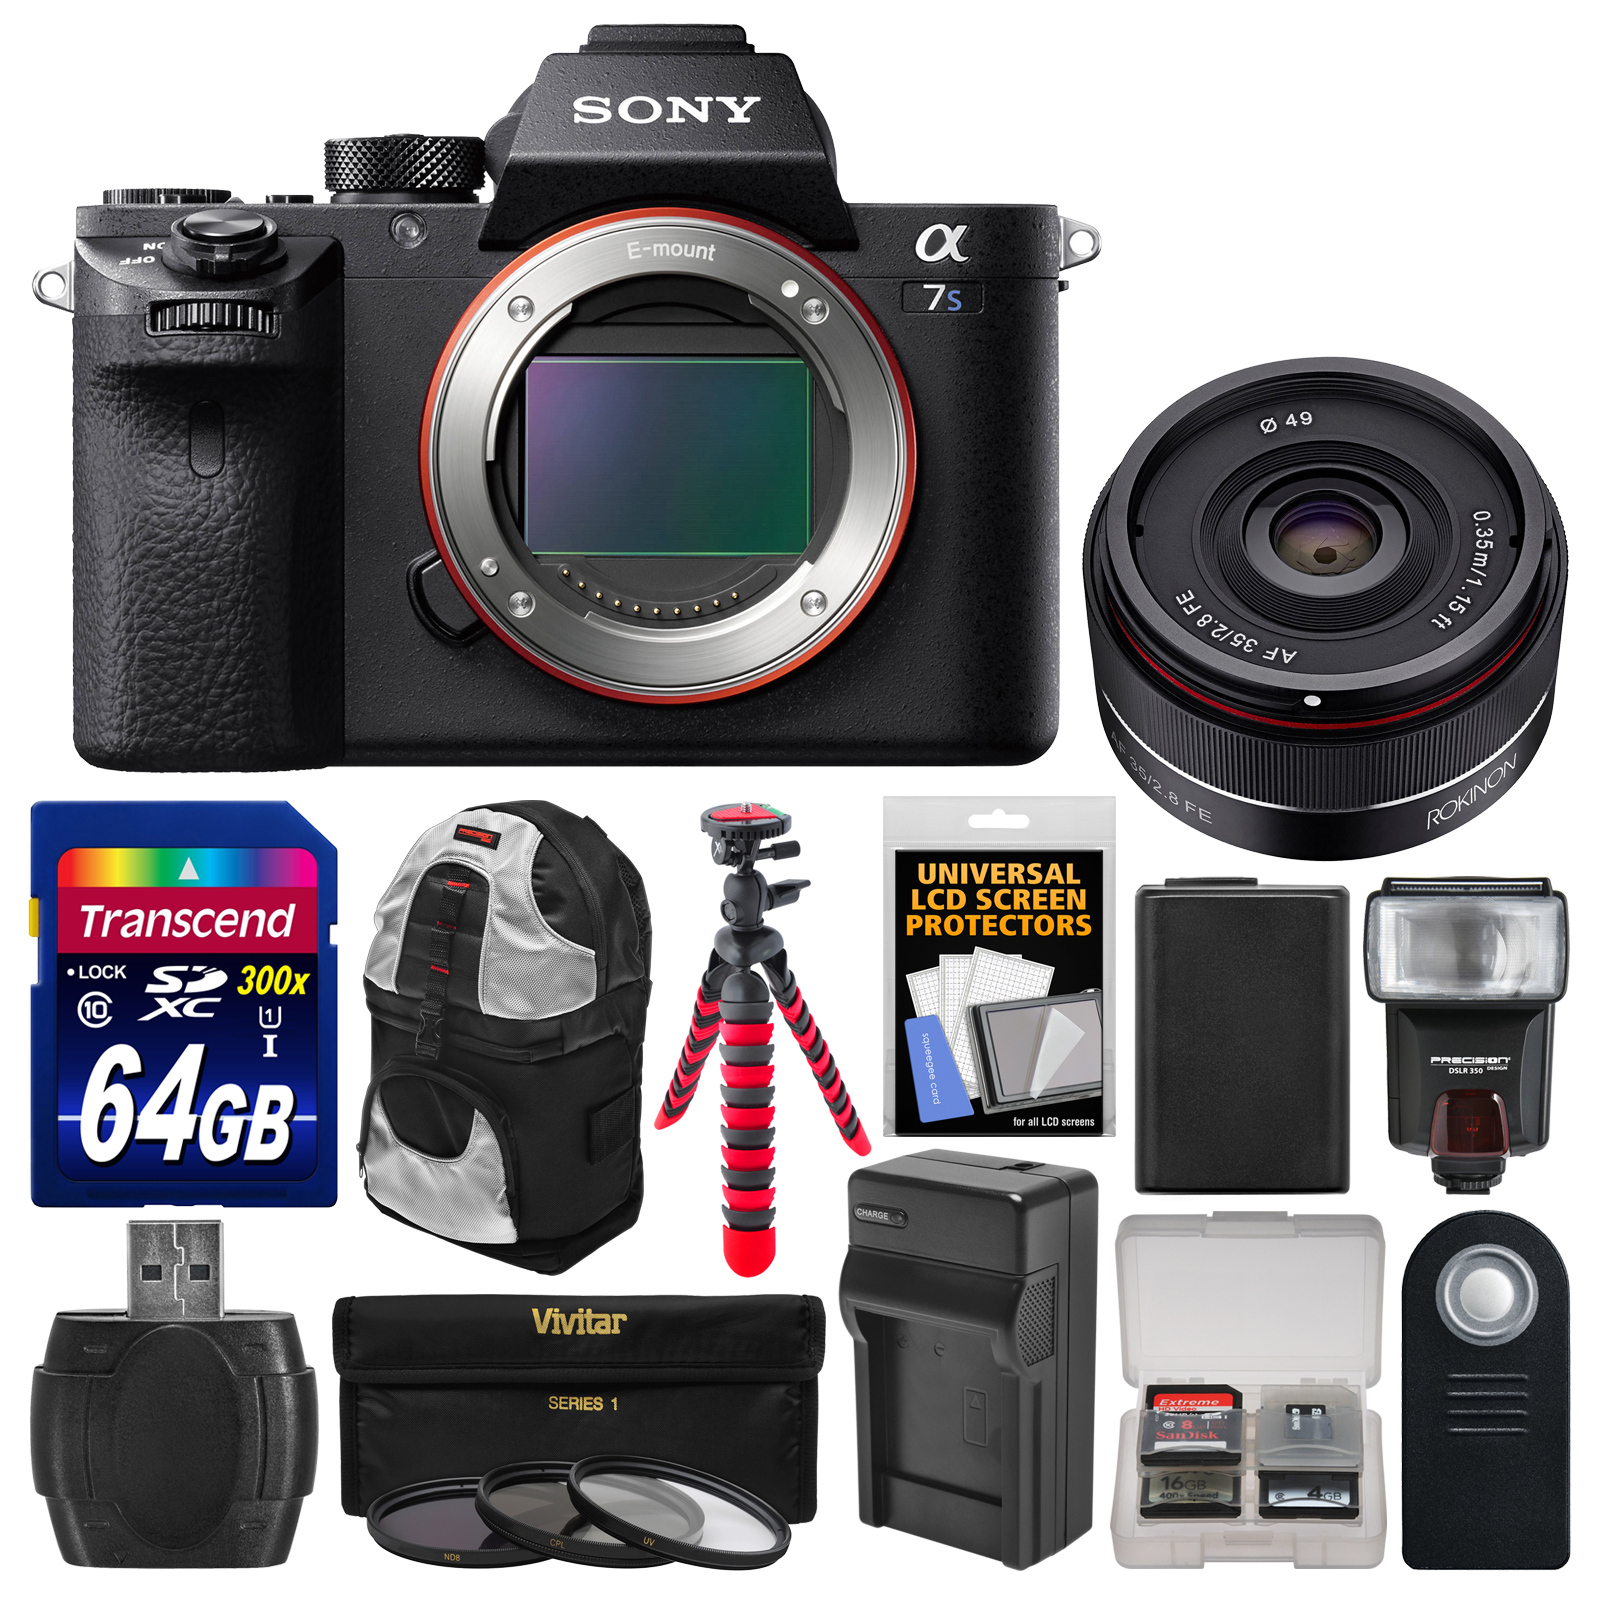 Sony Alpha A7S II 4K Wi-Fi Digital Camera Body with 35mm f 2.8 Lens + 64GB Card + Backpack + Flash + Battery &... by Sony